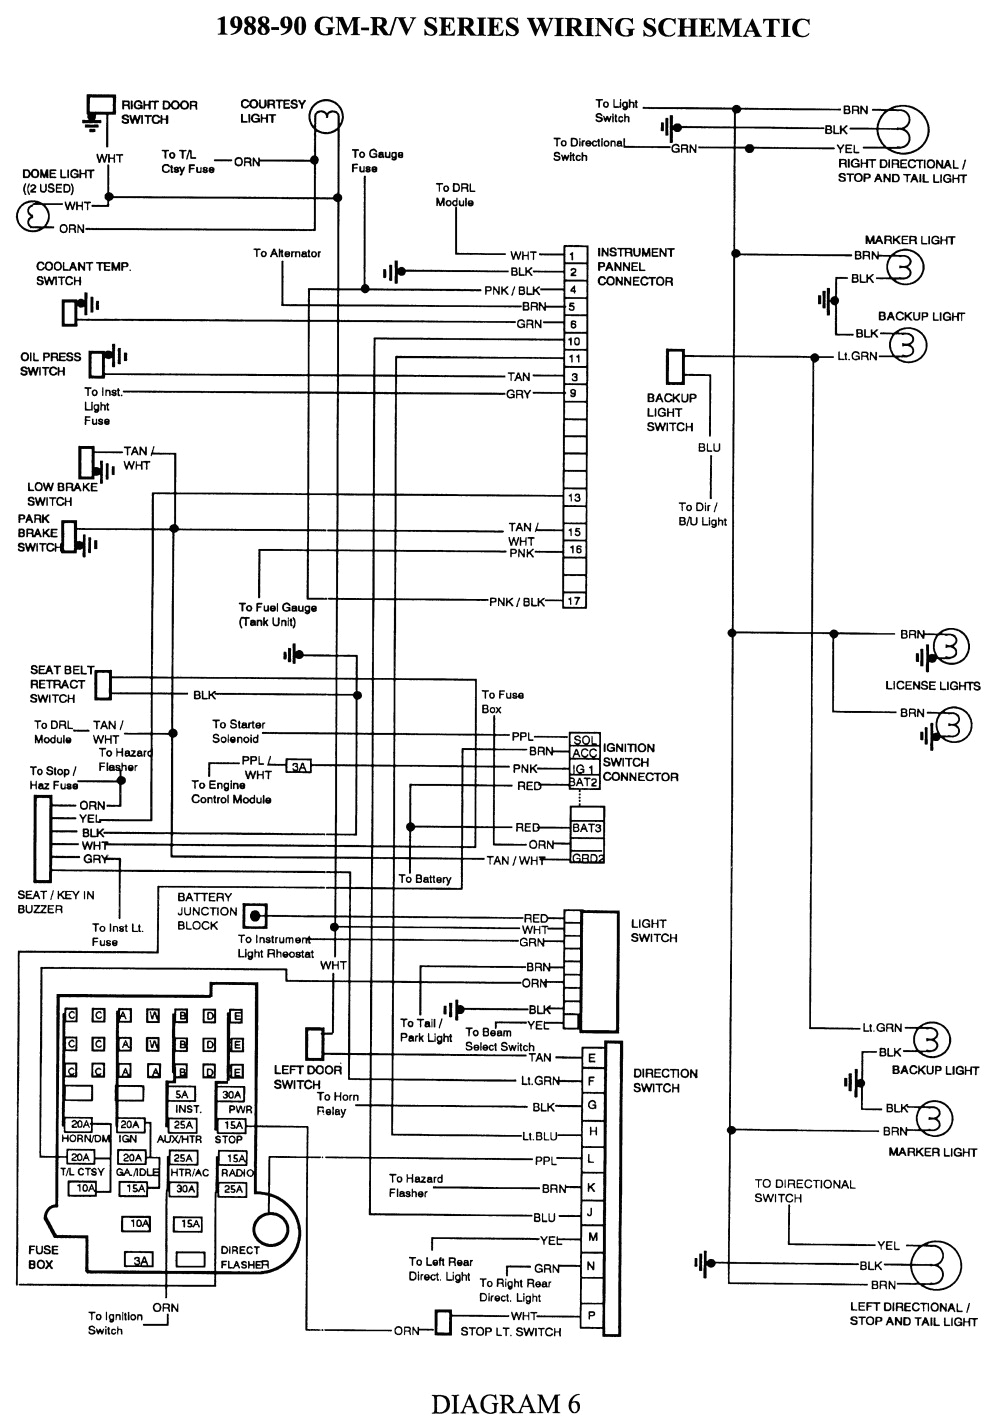 2001 chevrolet wiring diagram wiring diagram blog 2001 chevy s10 wiring diagram 2001 chevrolet wiring diagram